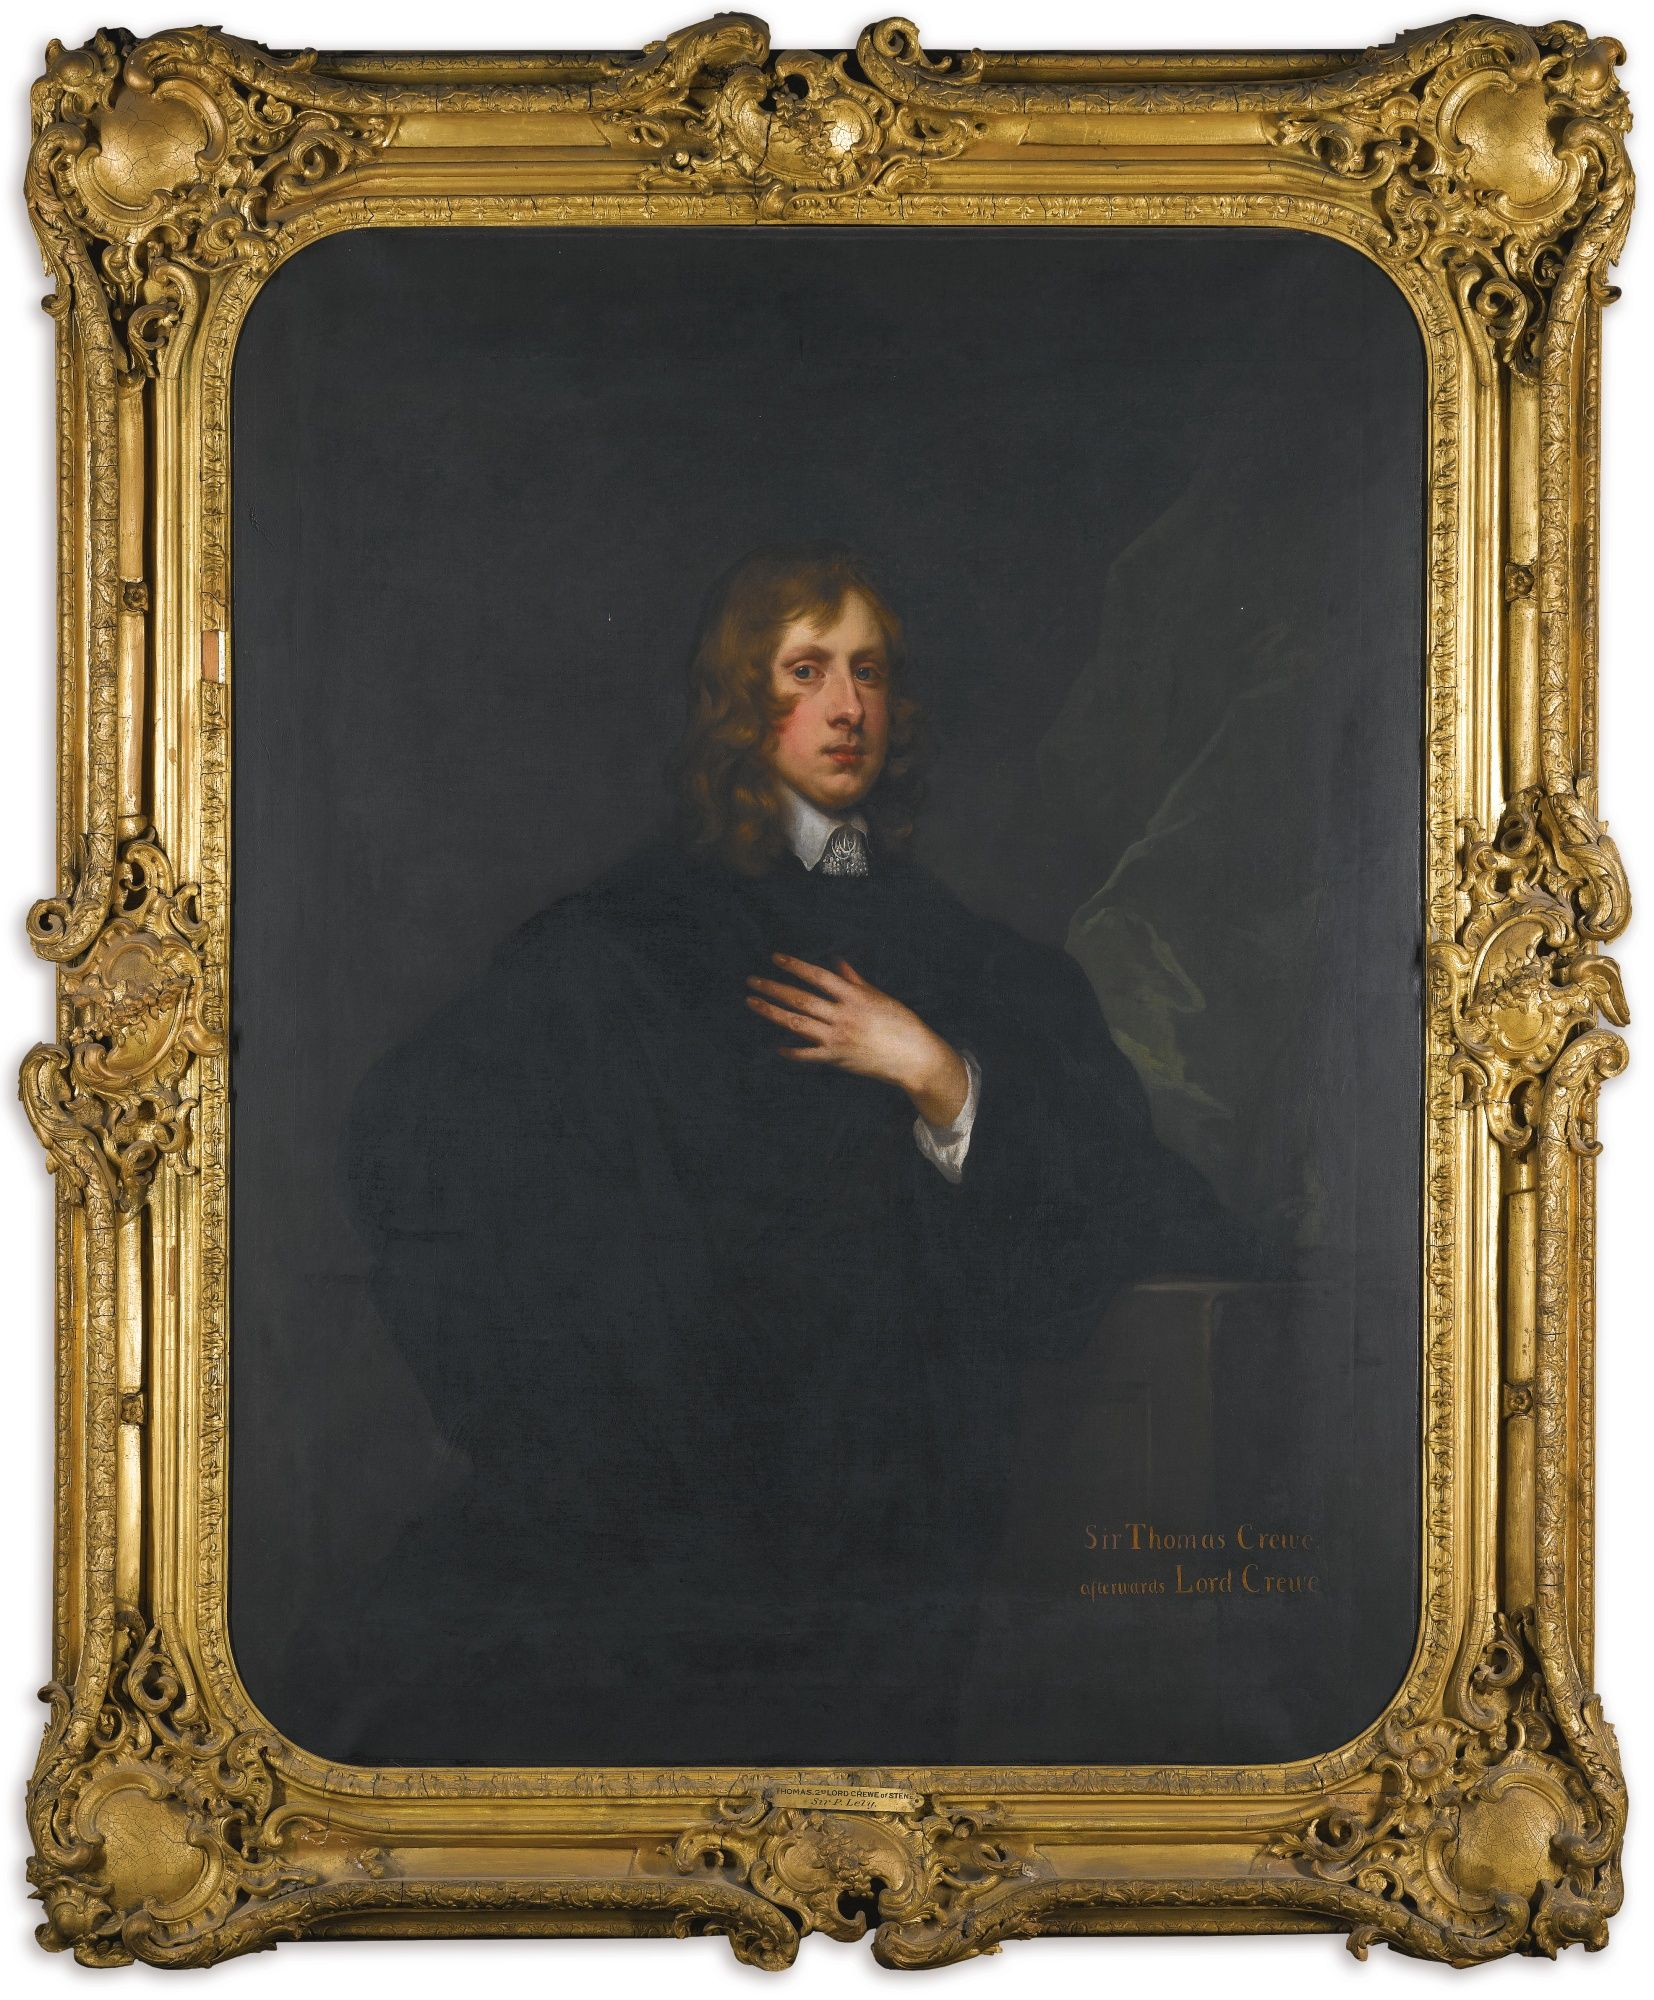 Sir Peter Lely SOEST 1618 - LONDON 1680 PORTRAIT OF THOMAS CREW, 2ND BARON CREW OF STENE (1624-1697), STANDING THREE-QUARTER LENGTH